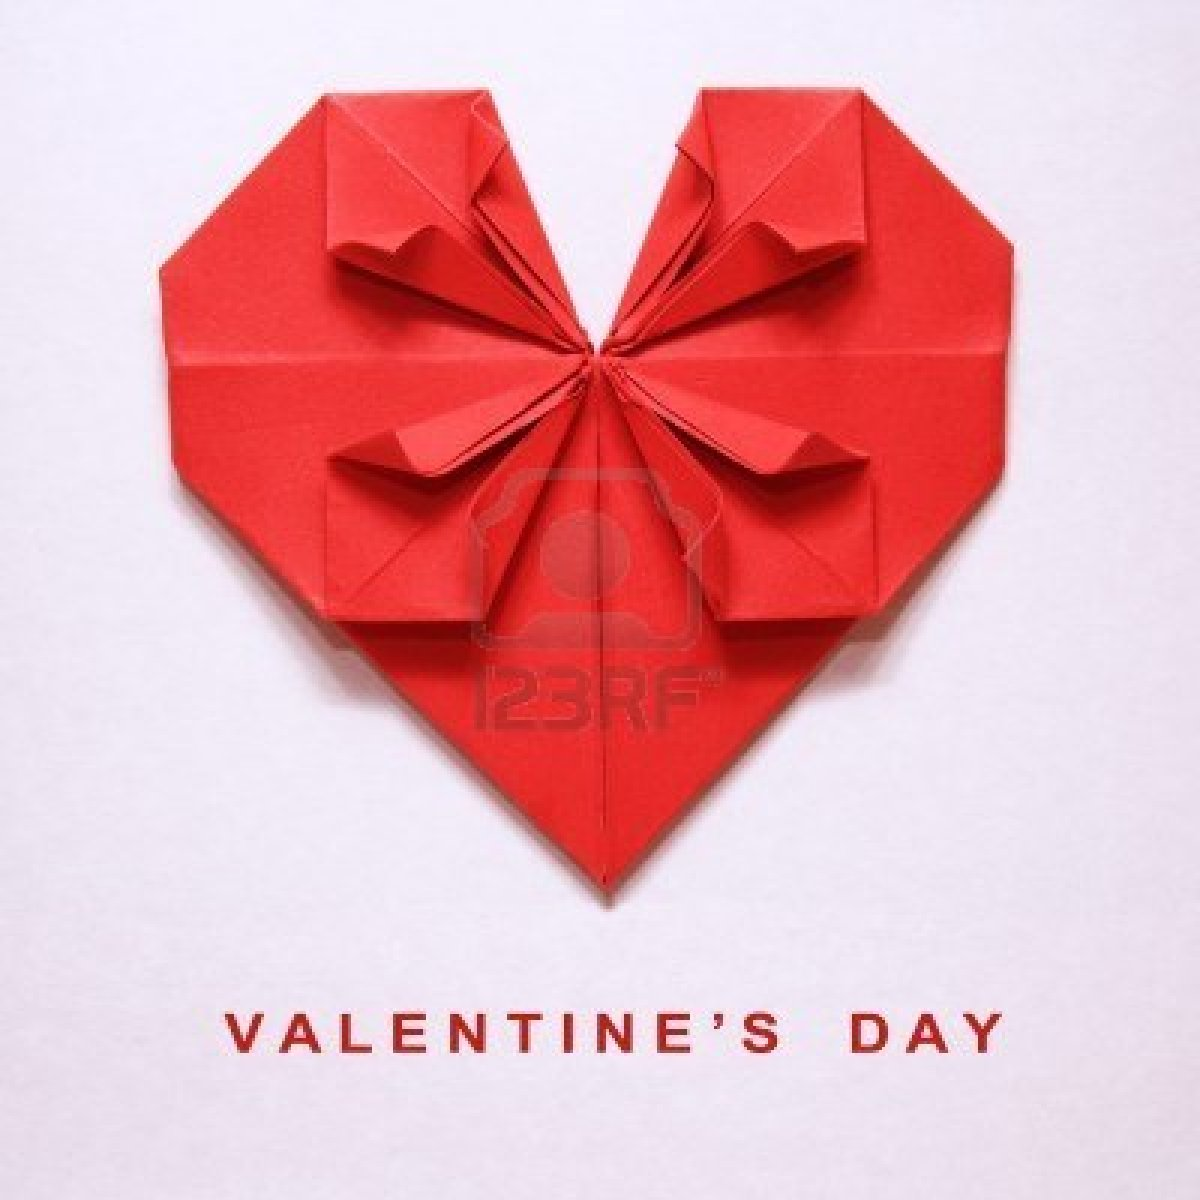 Valentines day greeting cards pictures and photos